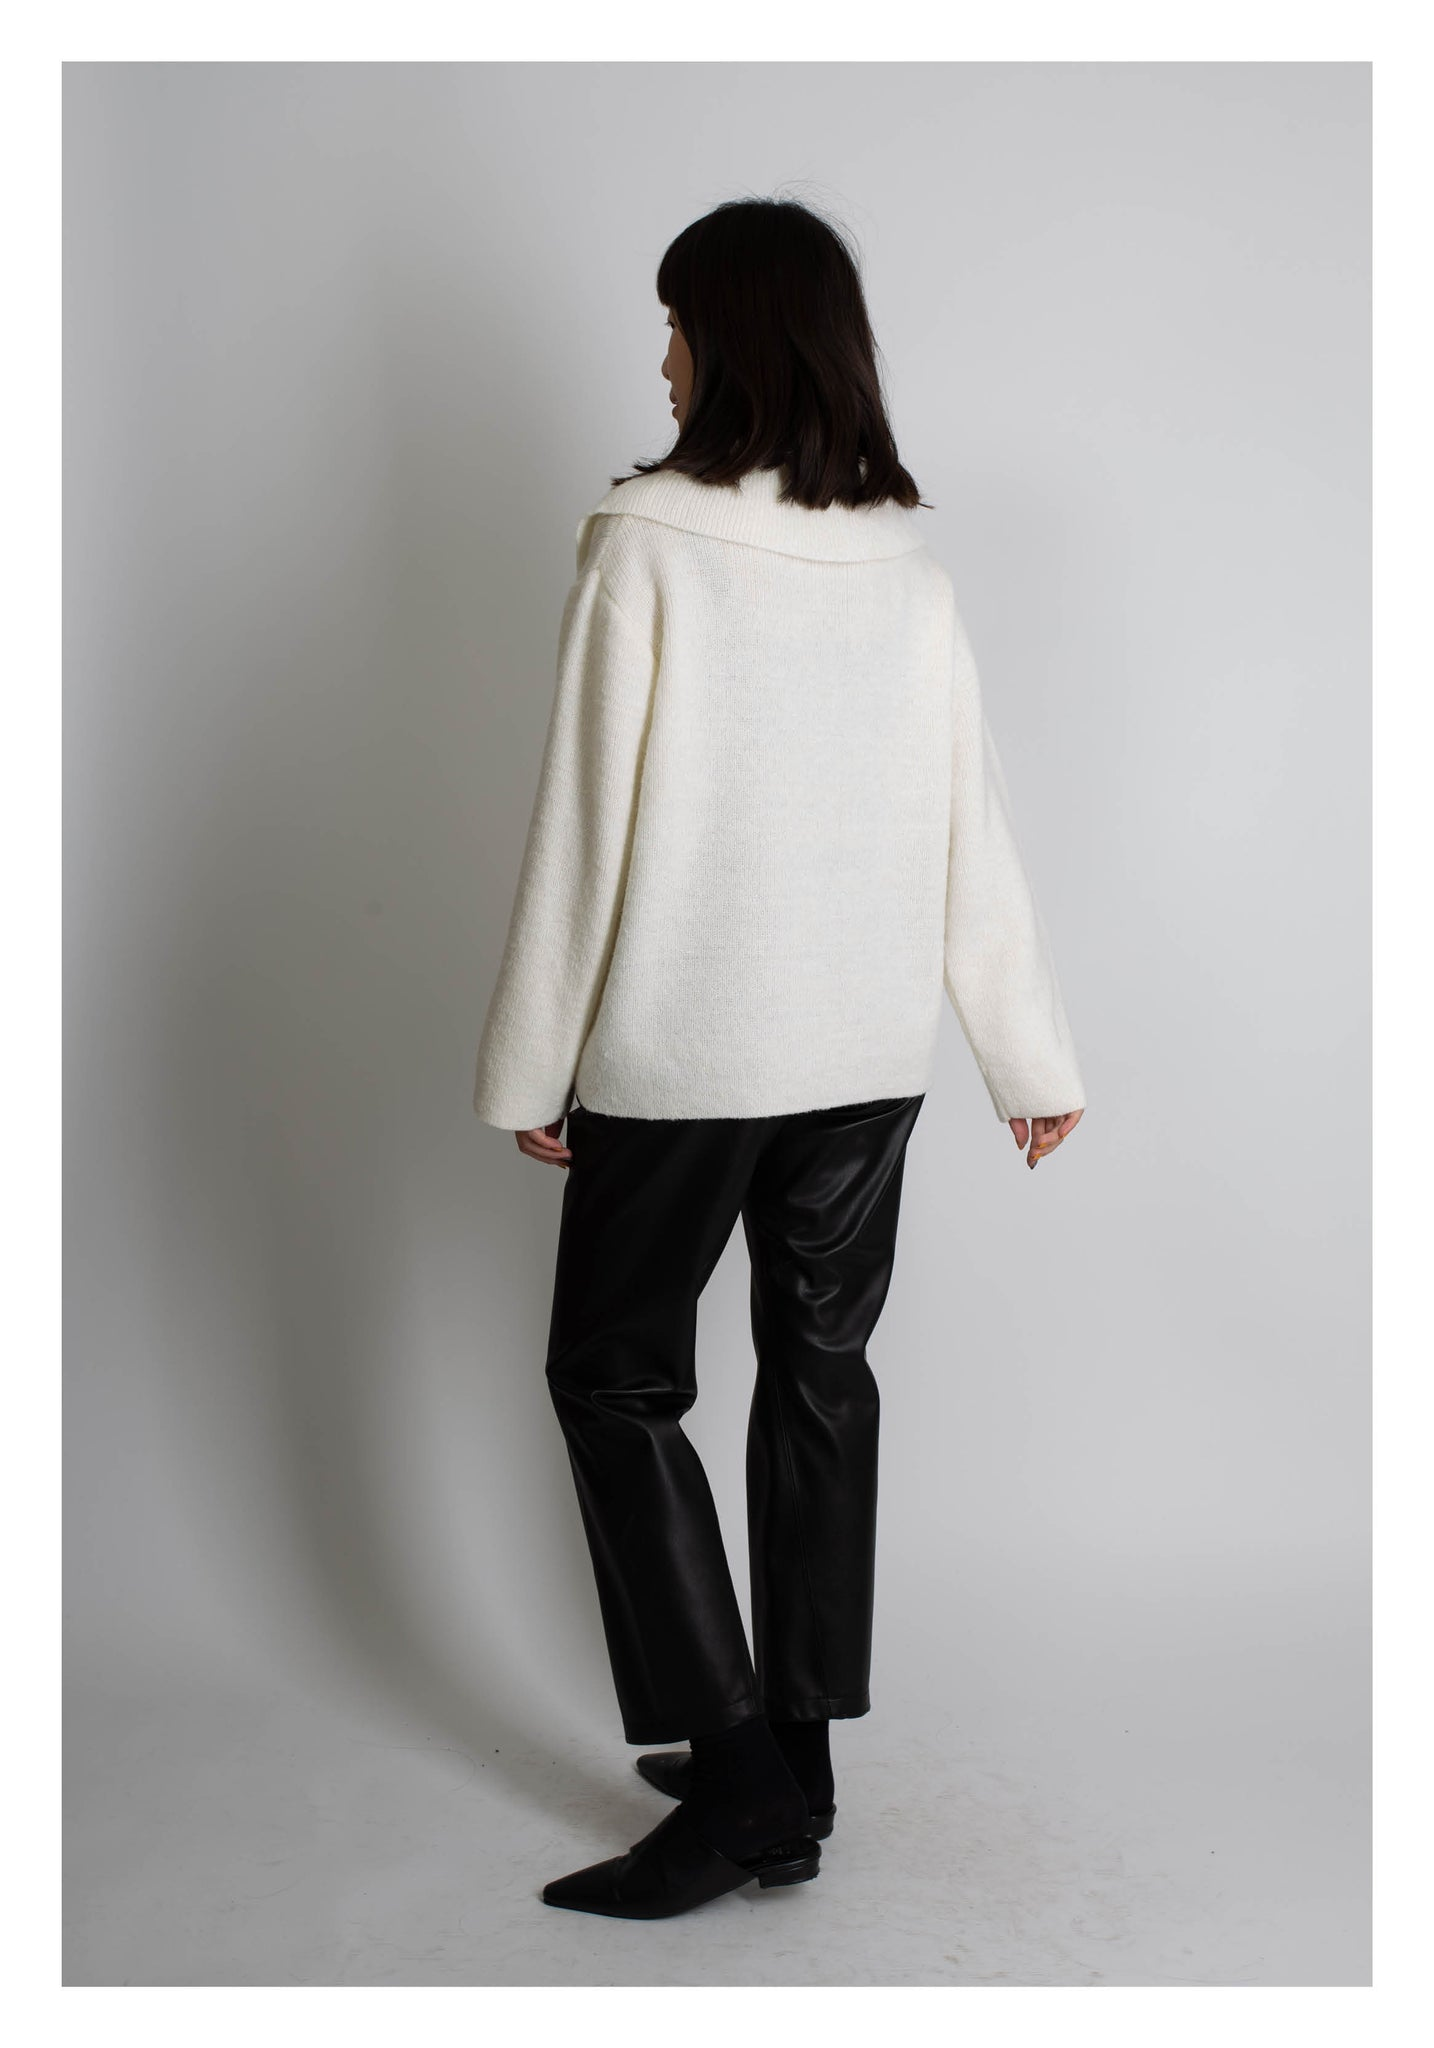 Collar Button Relaxing Knit Top White - whoami